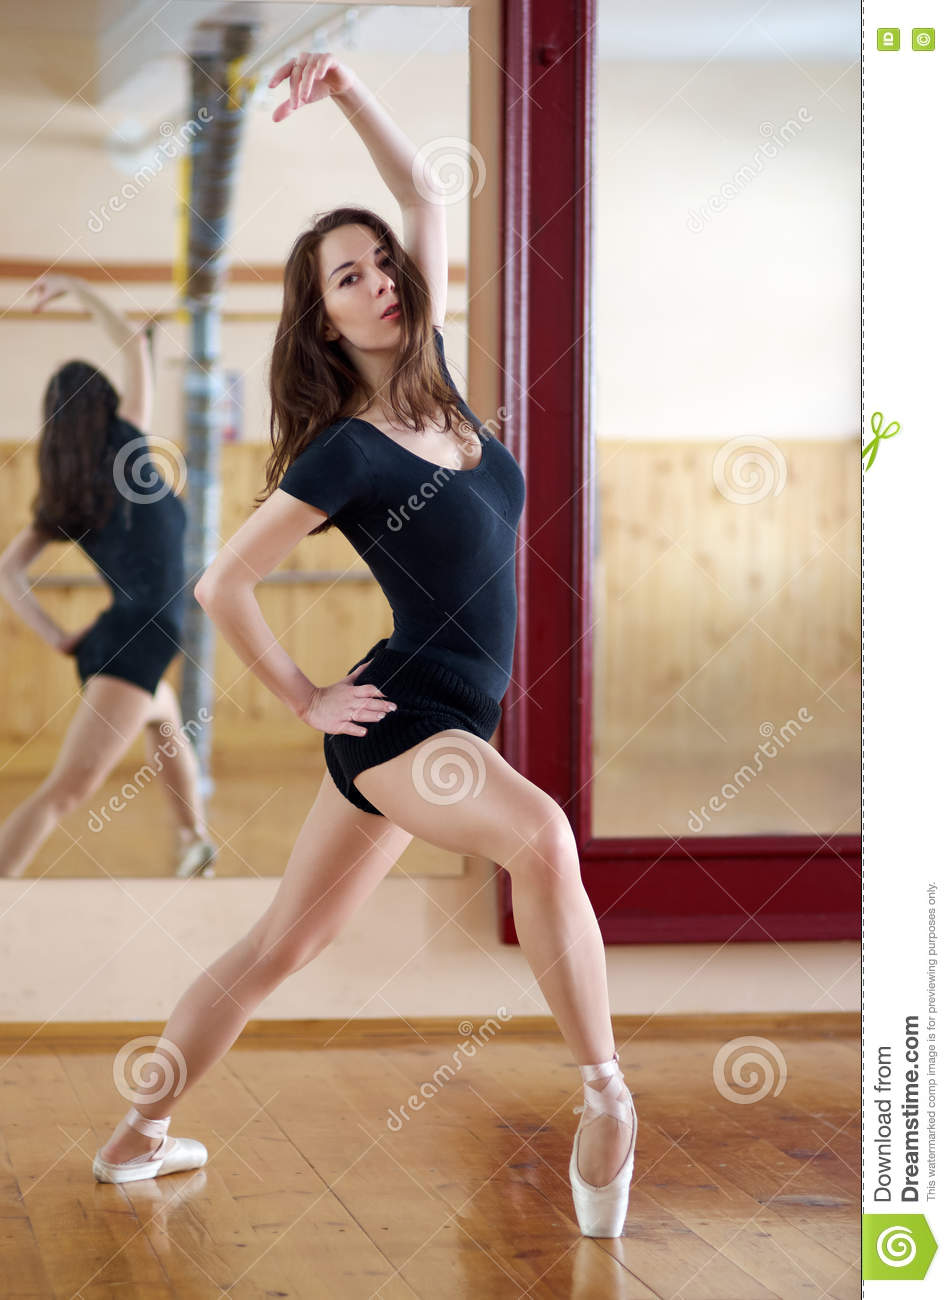 Young beautiful dancer posing in fitness center on a studio mirror background